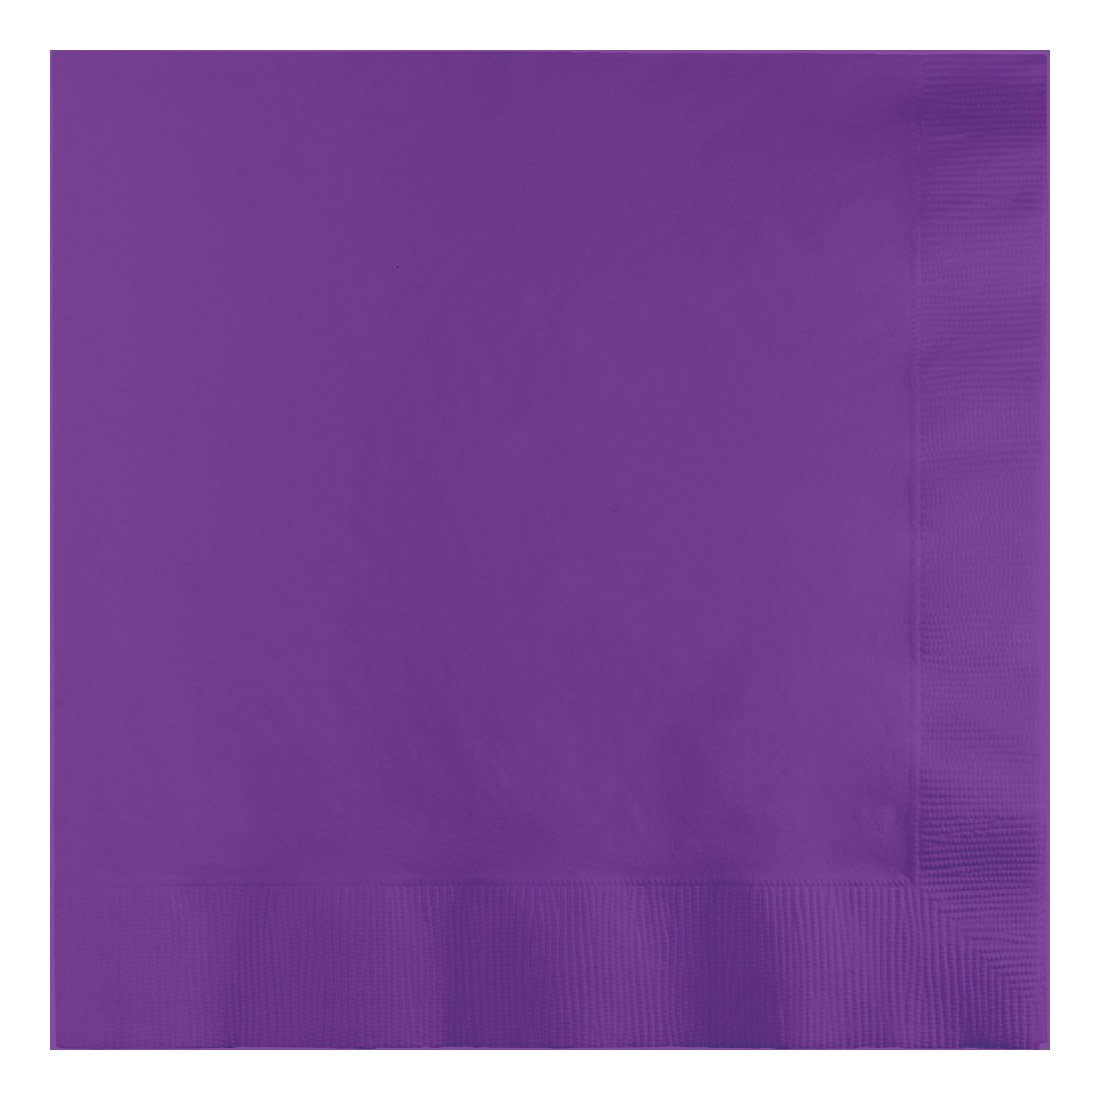 Creative Converting 25Count 3-Ply 1/4 Fold Dinner Napkins, Amethyst